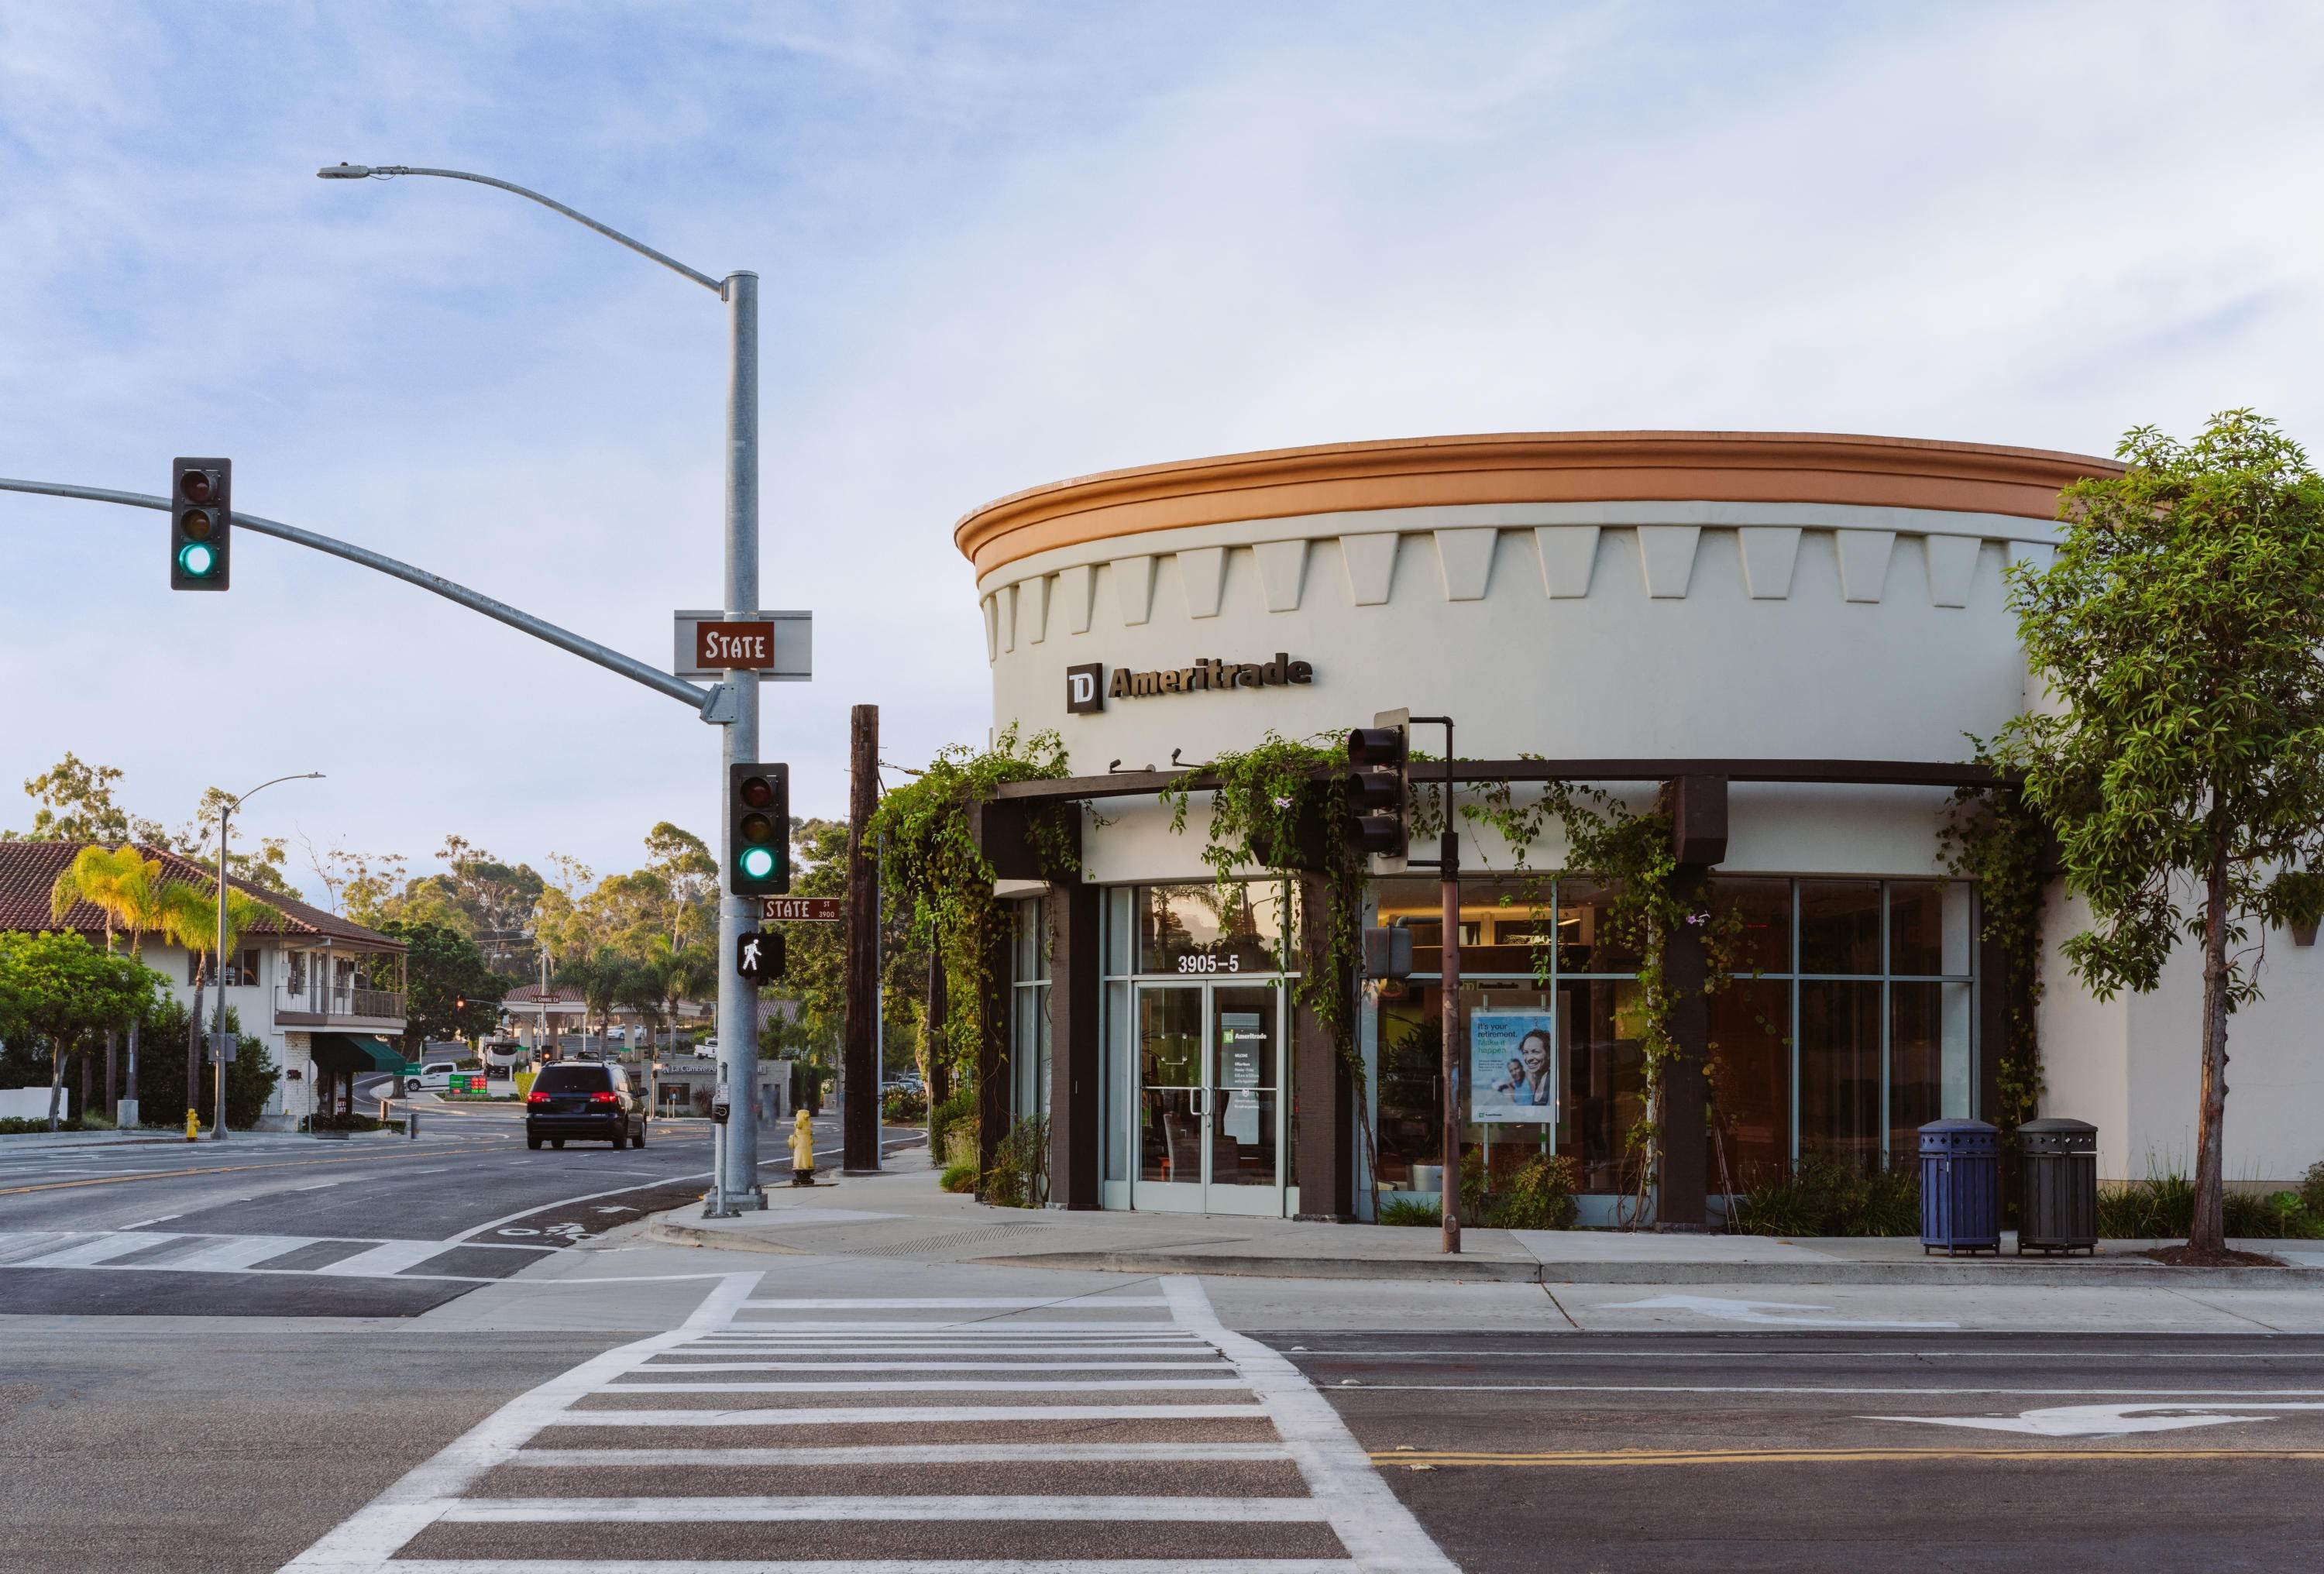 Commercial for Sale at 3905 State St 3905 State St Santa Barbara, California 93105 United States